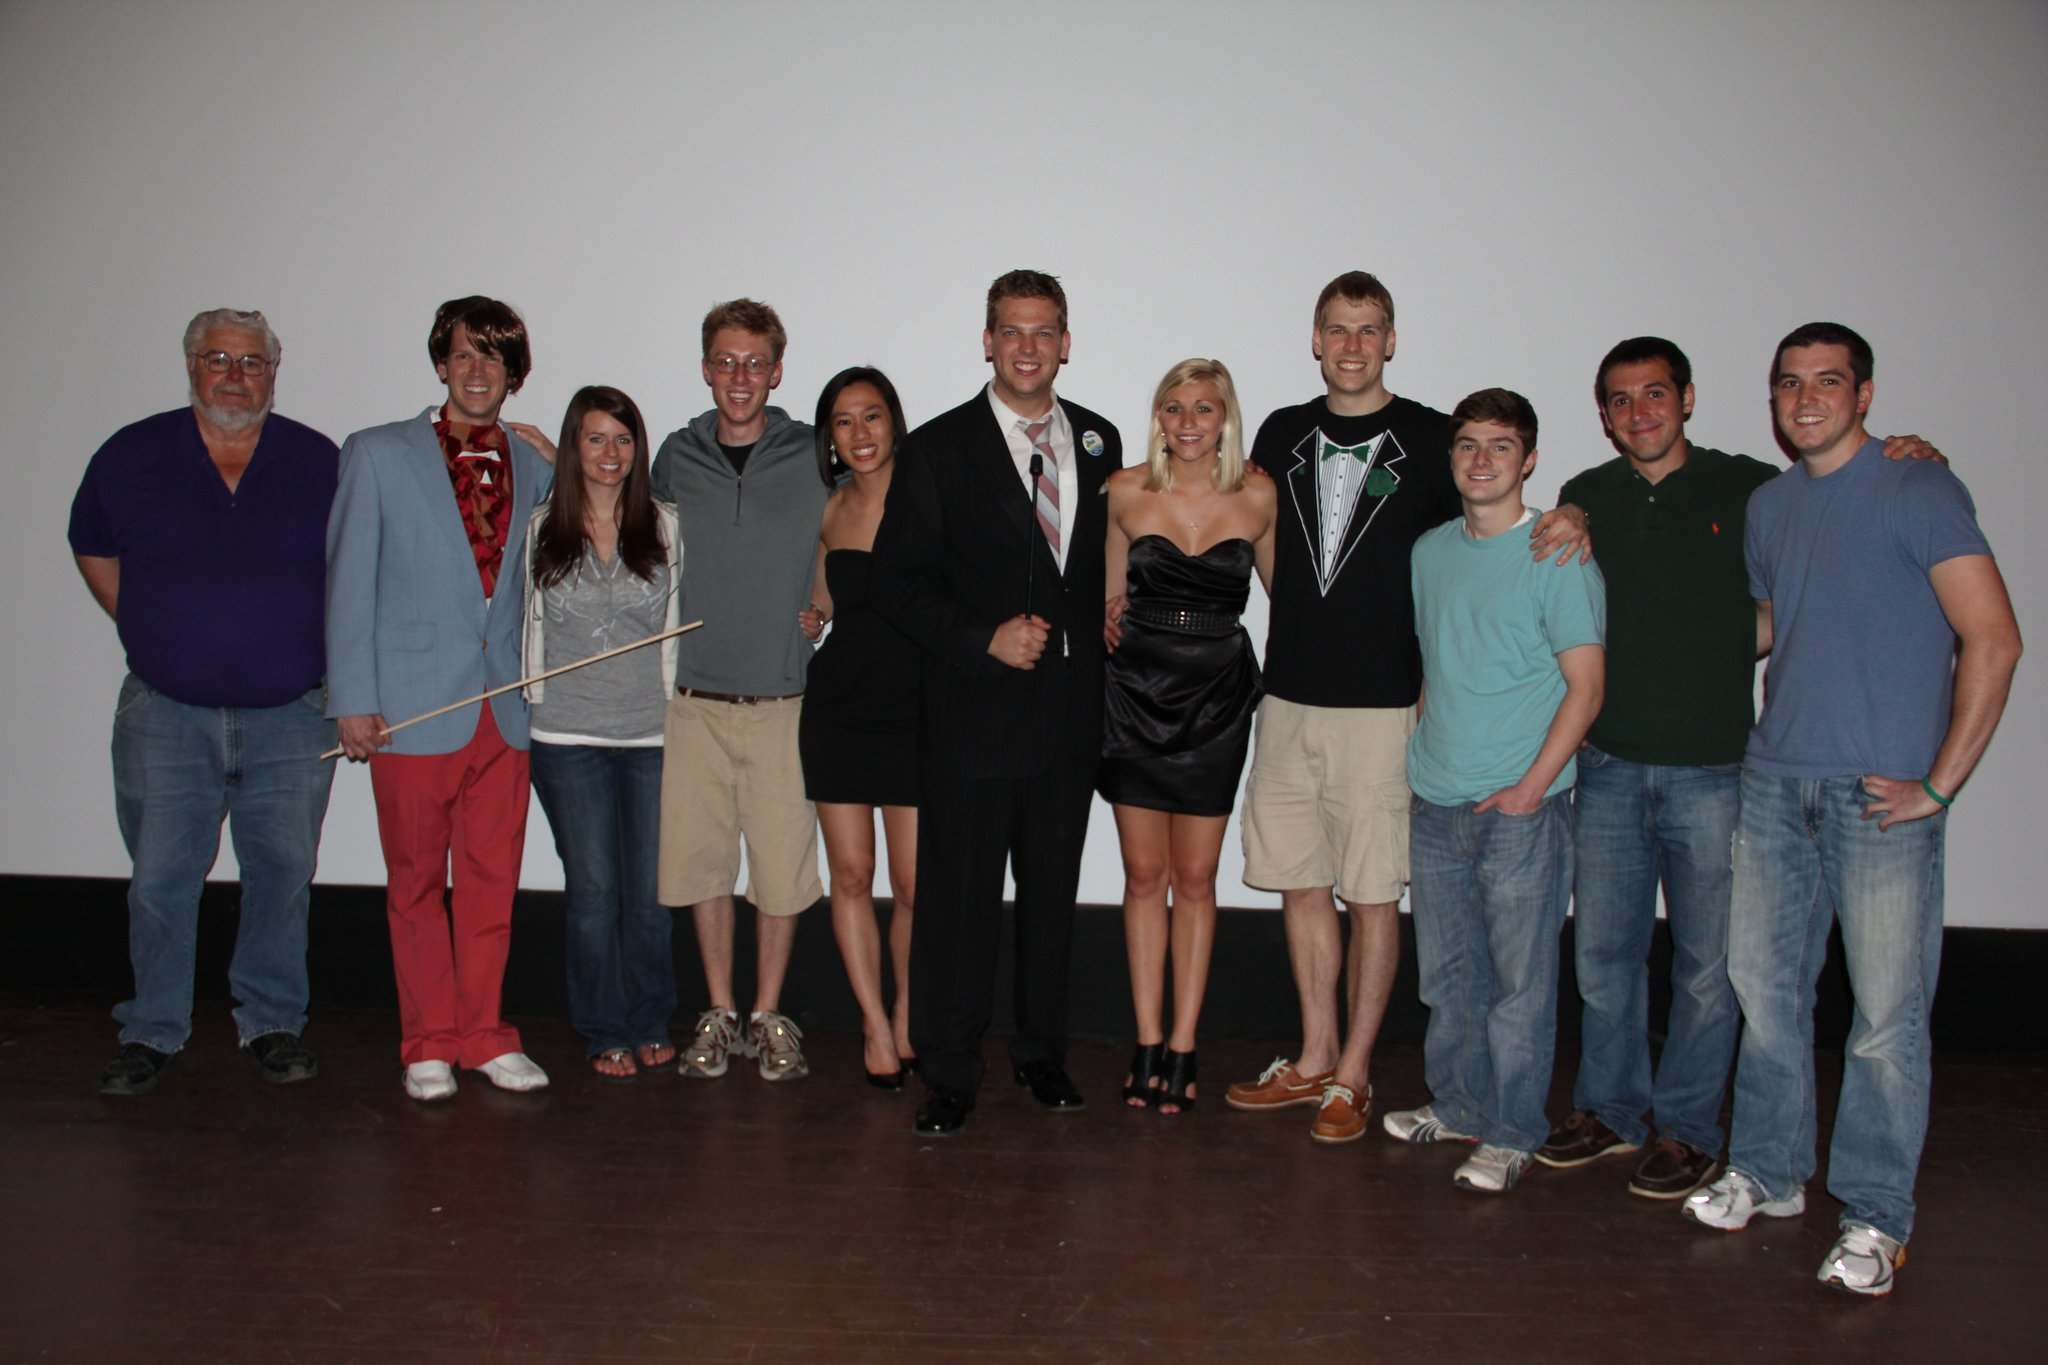 The original staff of The Harbor Beach Gameshow Series on May 21, 2011